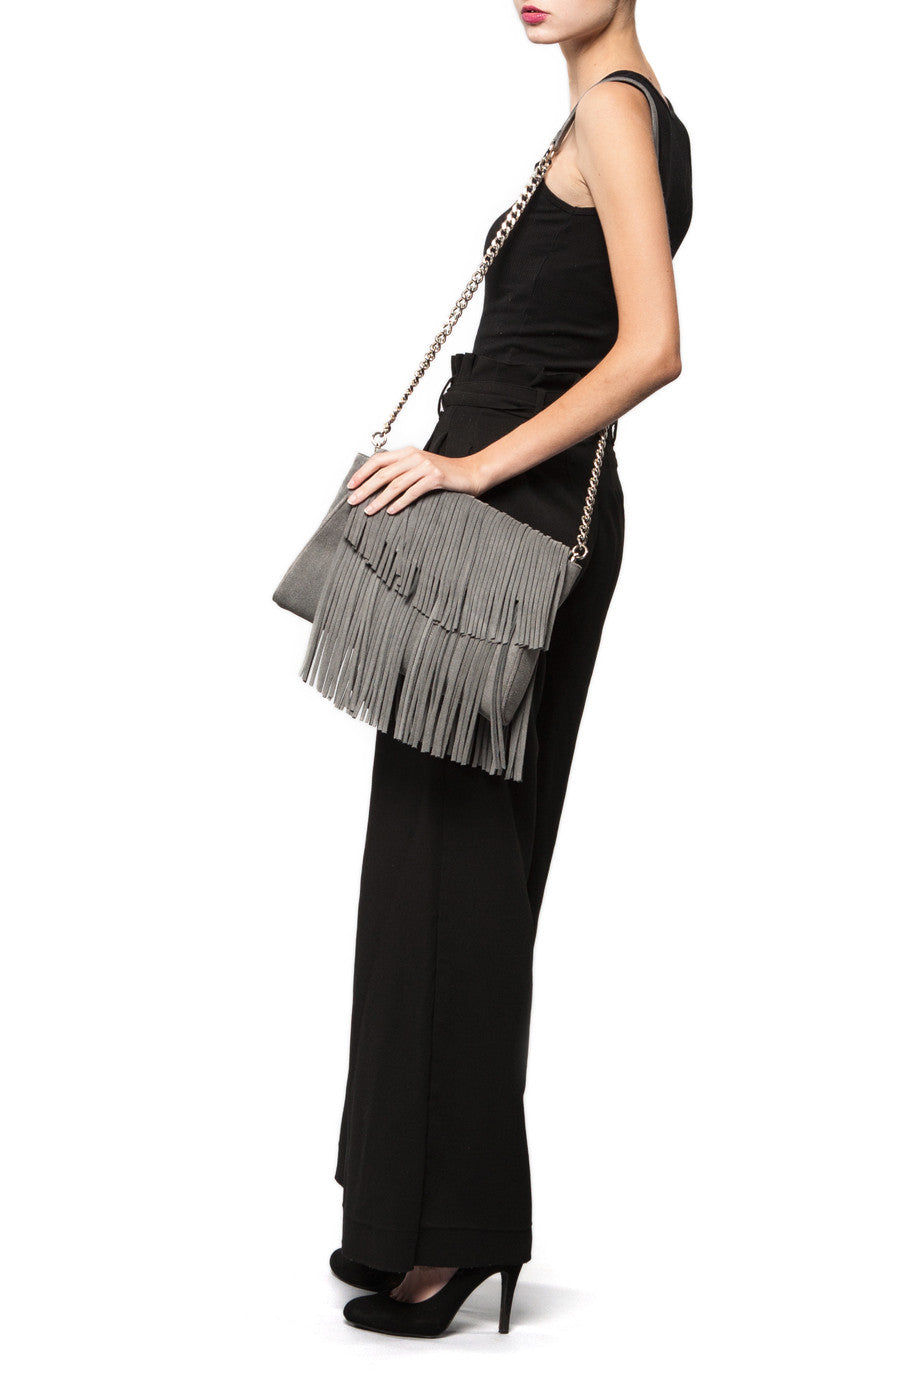 The 'Visions of Vogue' Grey Suede Fringe Handbag | Modeled | Mel Boteri